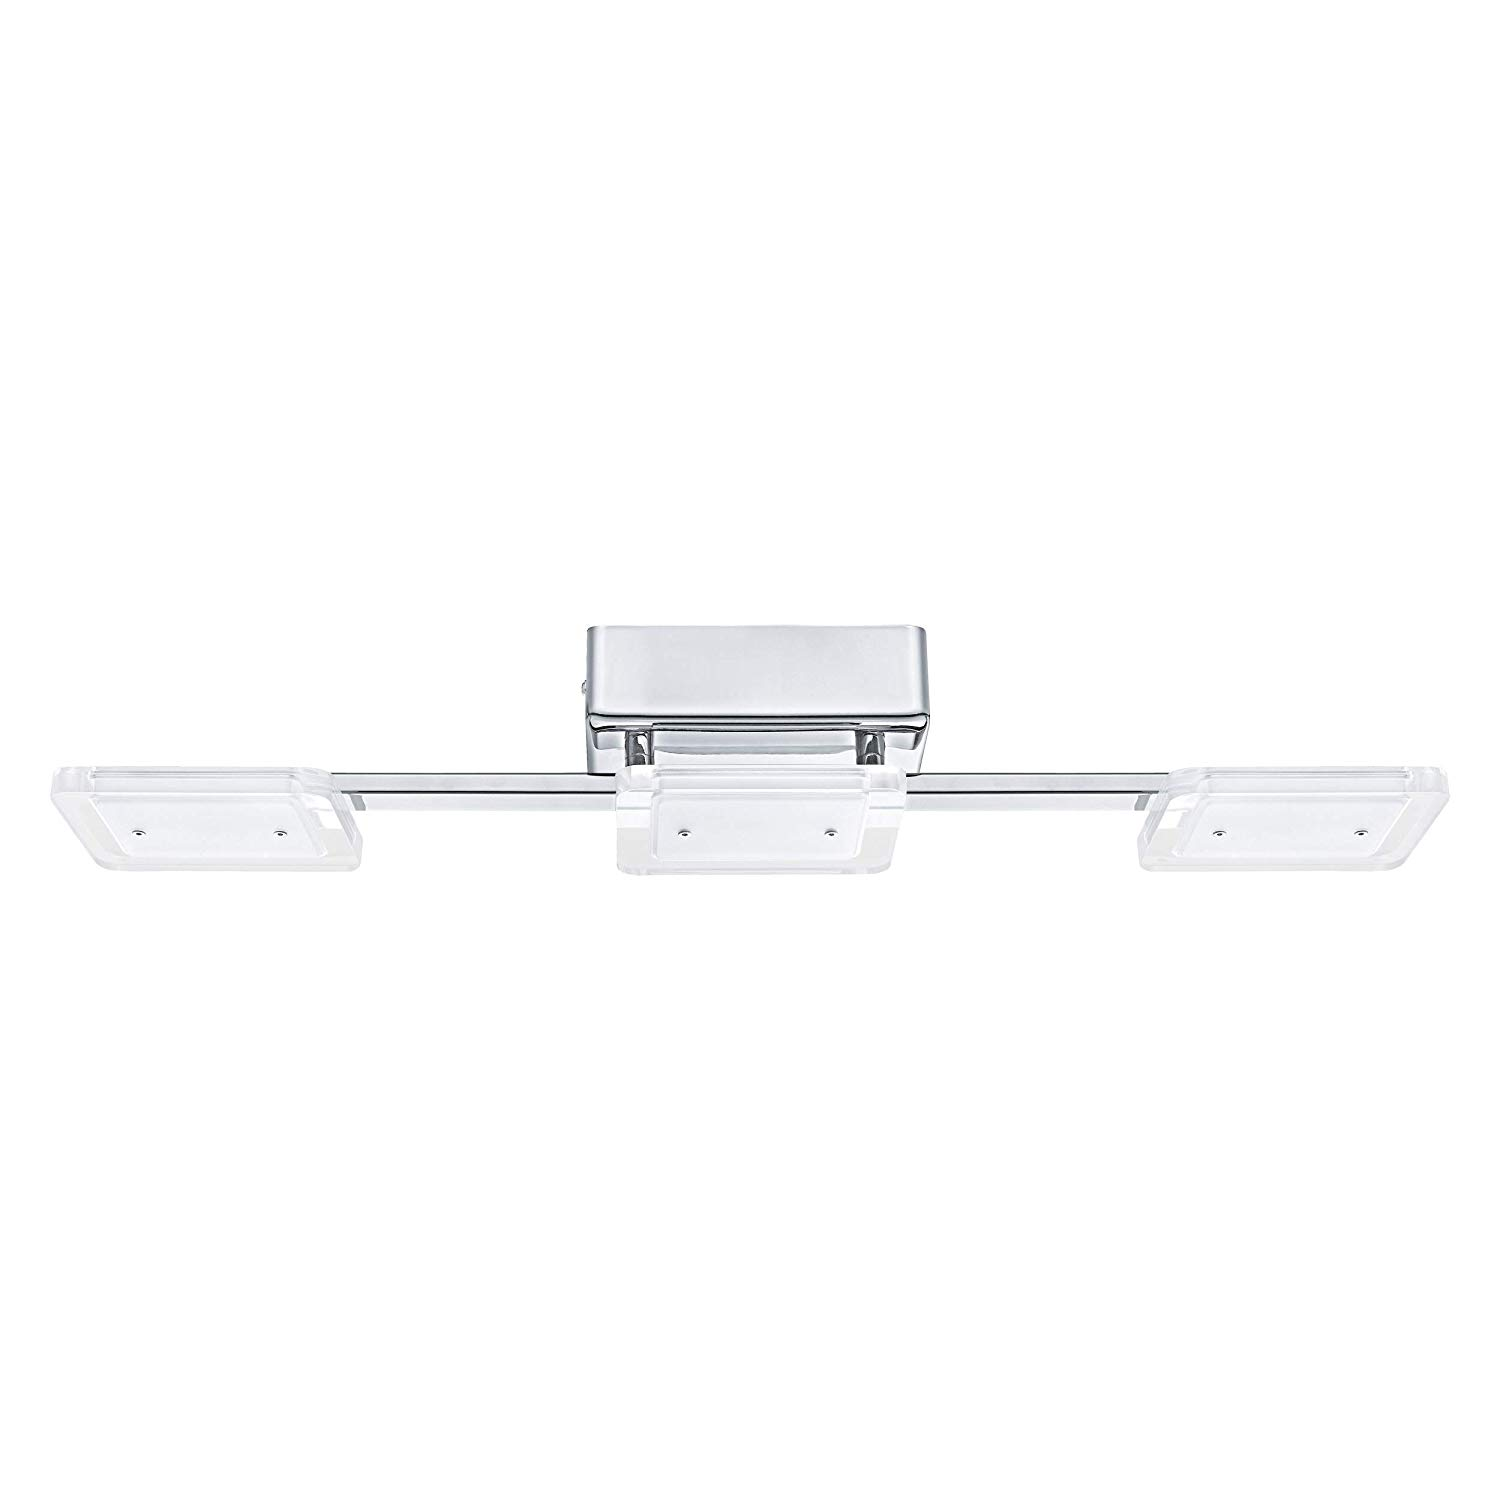 Eglo Cartama Krom/Glass 3x4,5W LED inkl.